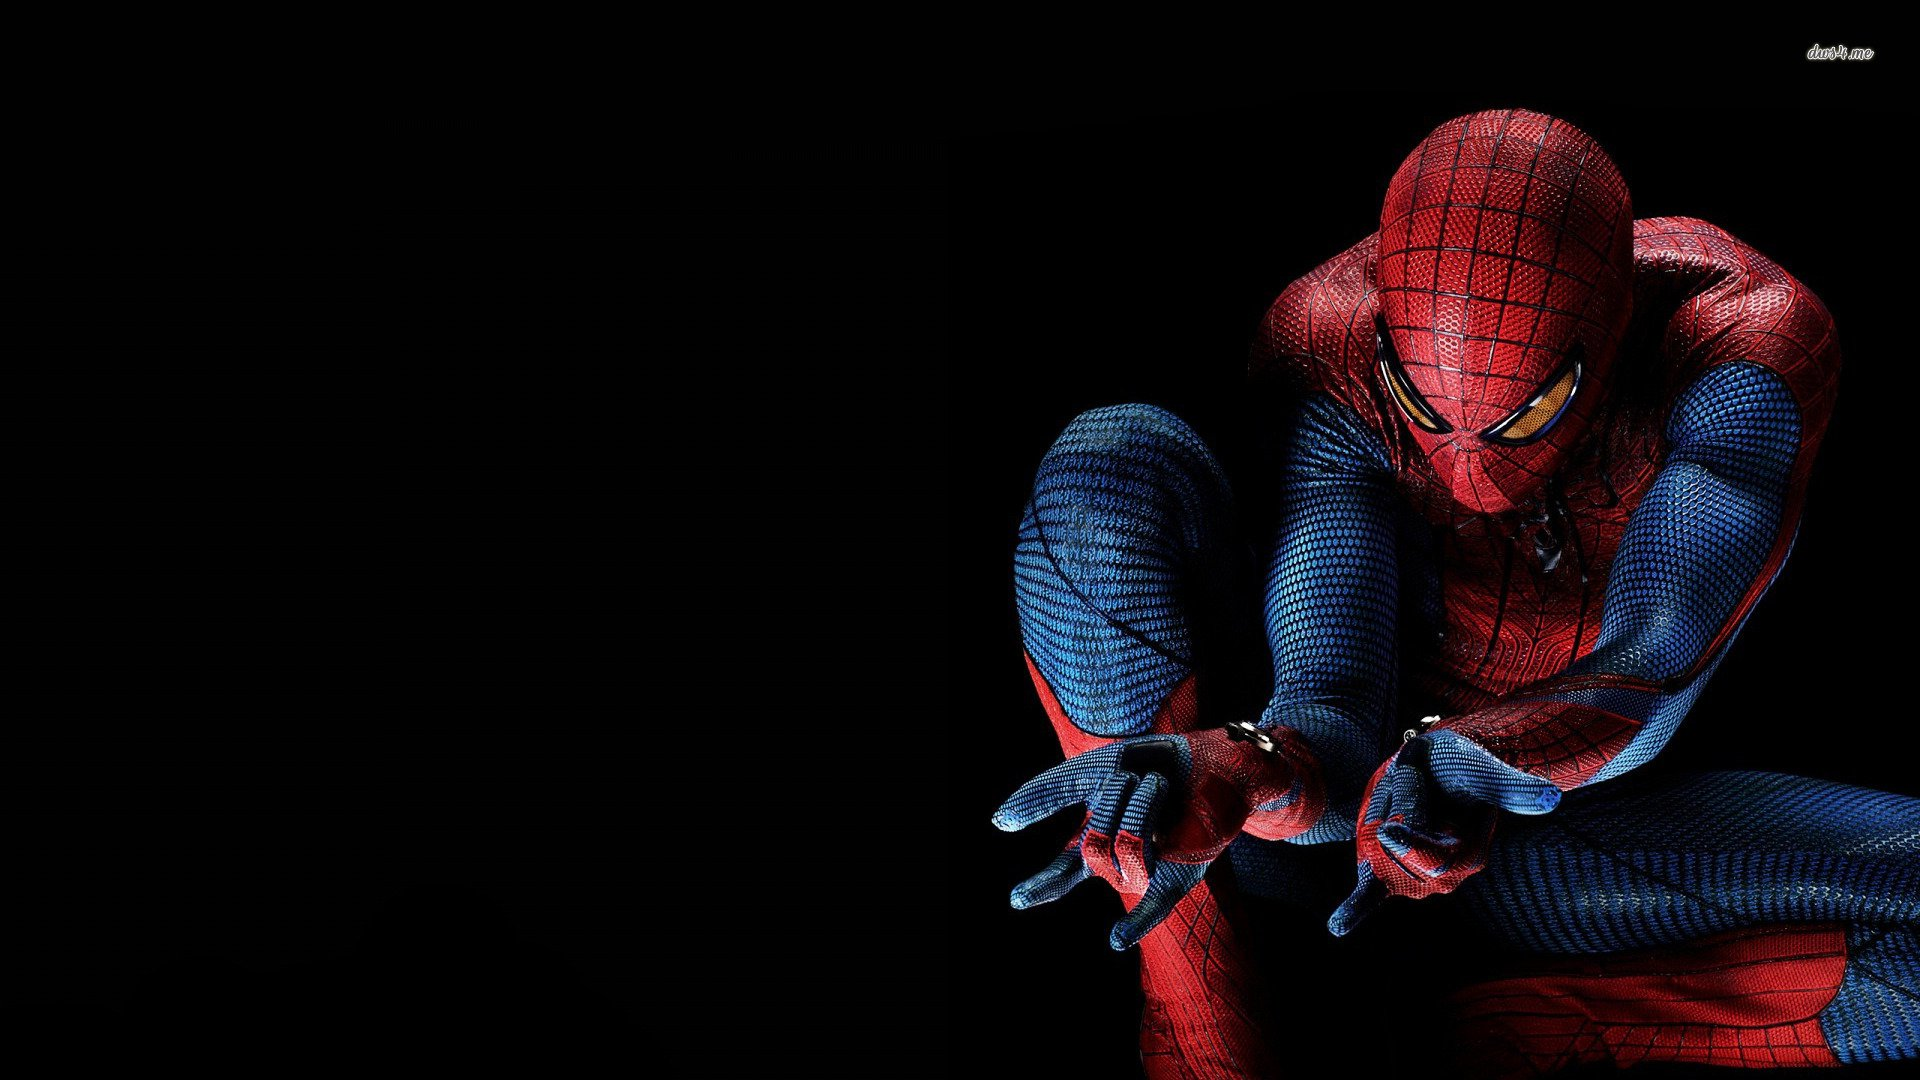 Spiderman 4k Wallpapers For Your Desktop Or Mobile Screen Free And Easy To Download